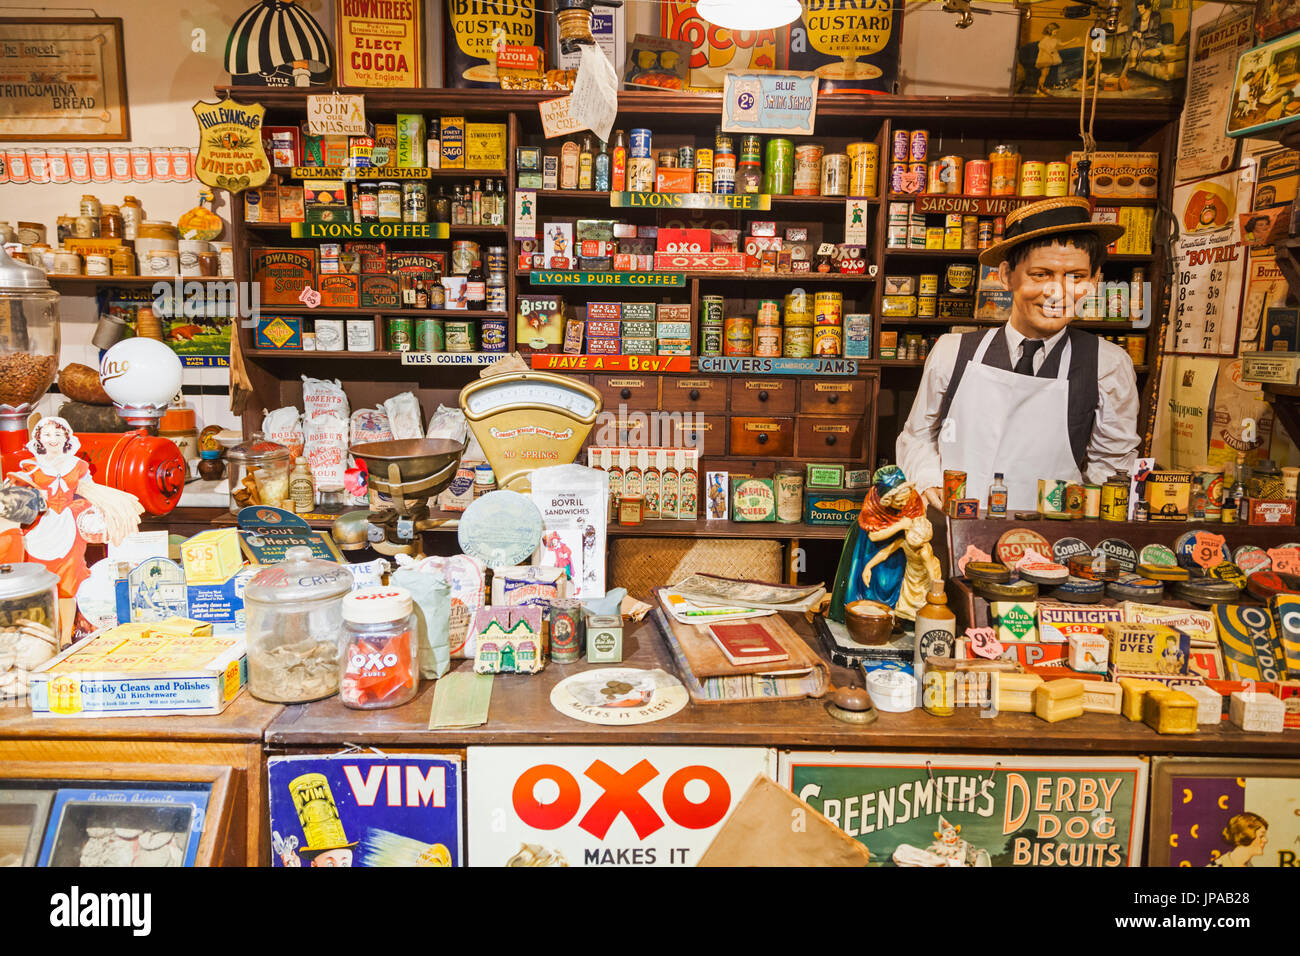 Romanian Food Store Edinburgh